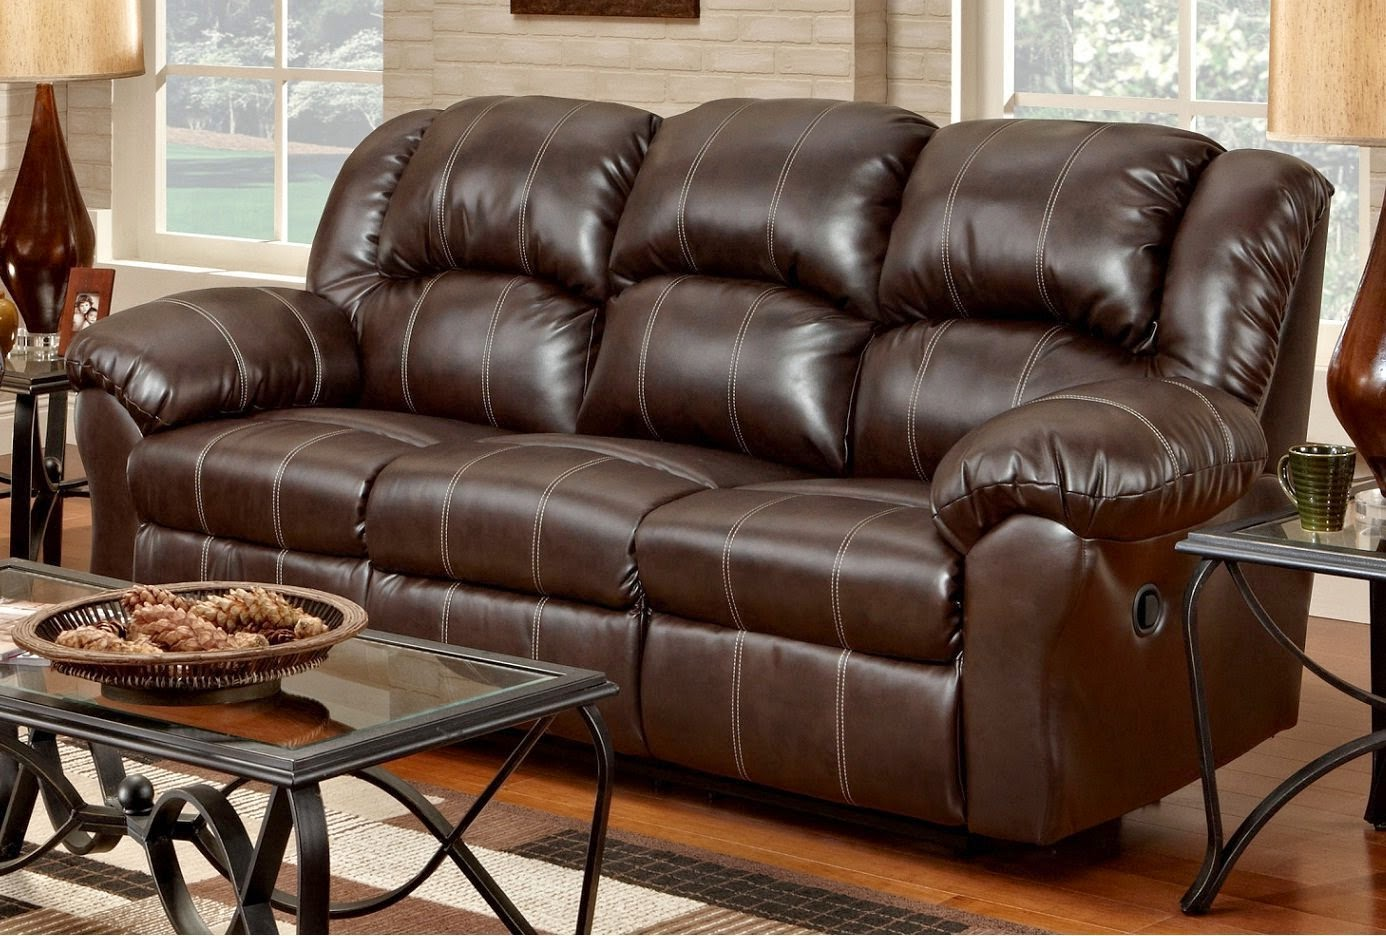 Roundhill Brown Alpha Leather Dual Reclining Sofa & Cheap Reclining Sofa And Loveseat Reveiws: Best Leather Reclining ... islam-shia.org